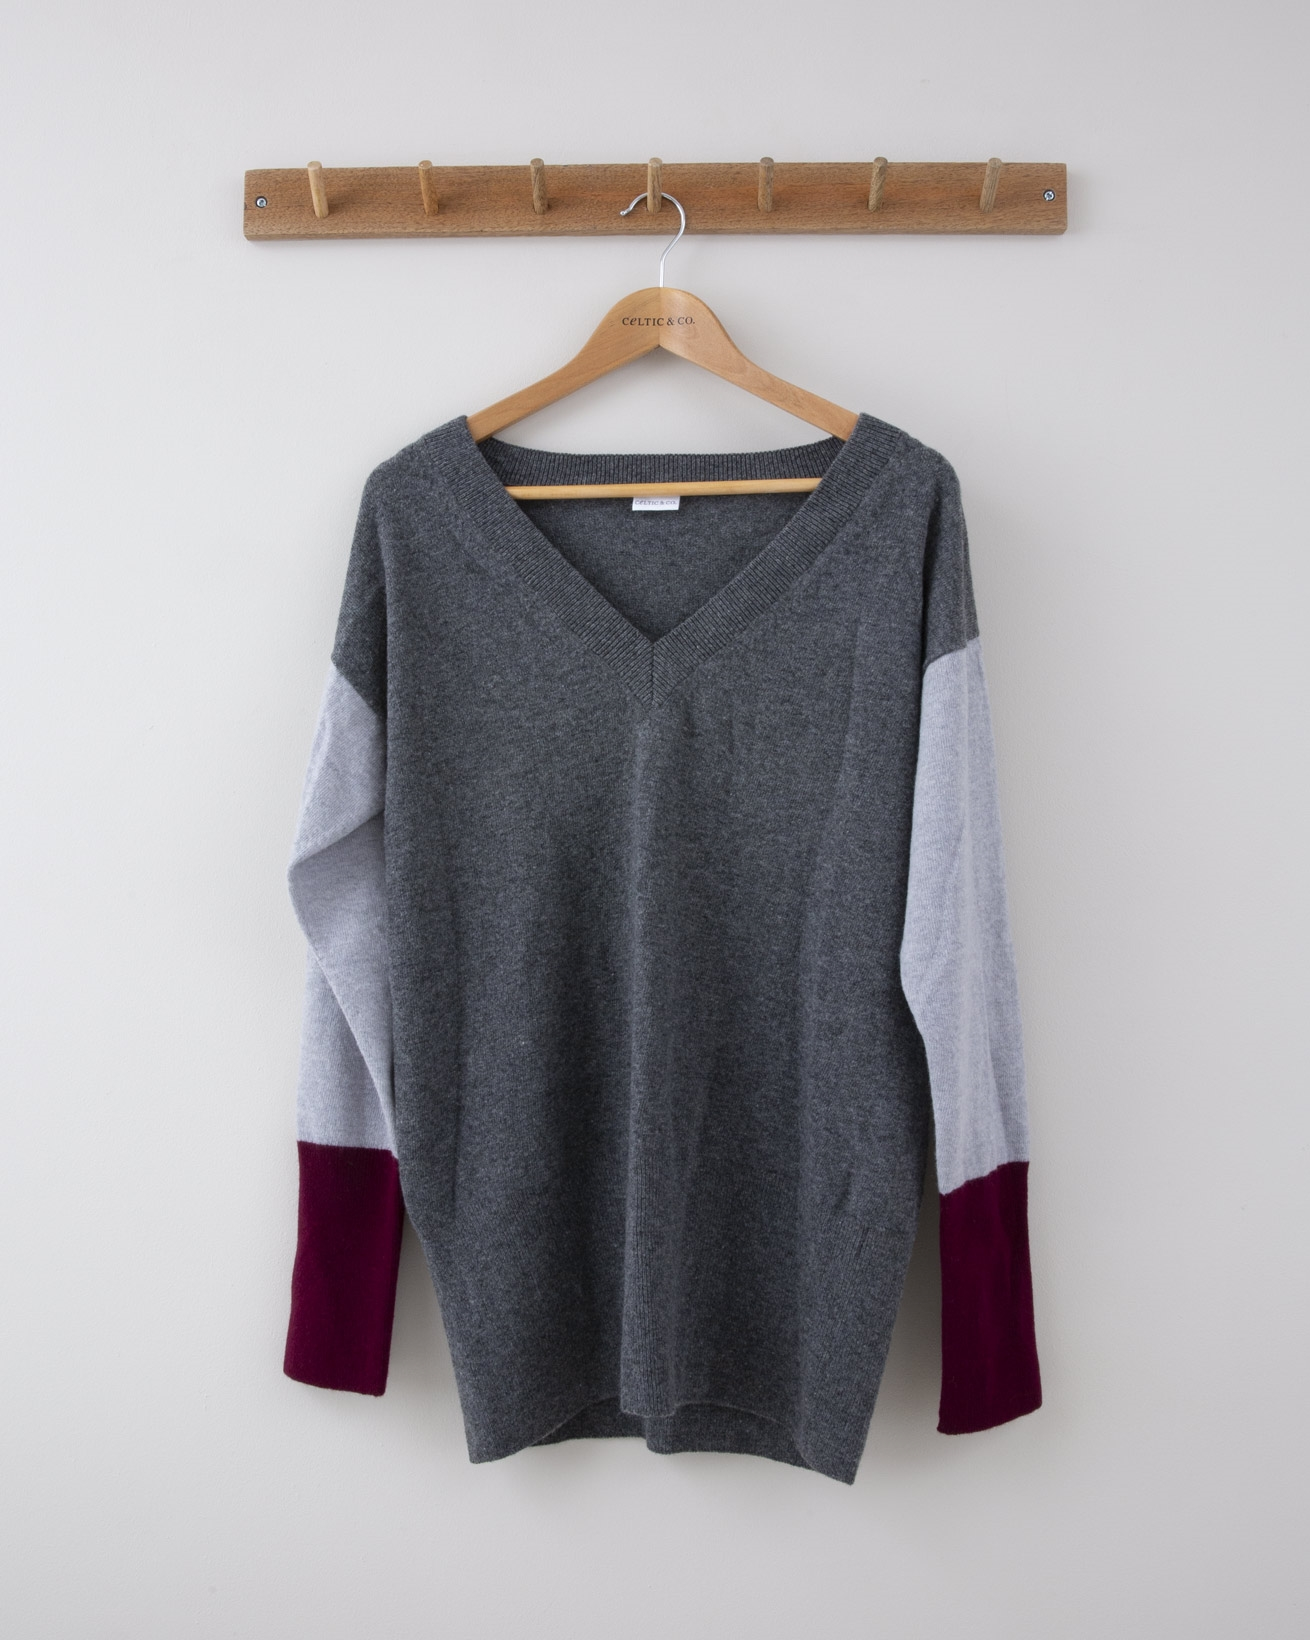 Supersoft V Jumper - Small - Derby Grey w/ Silver Grey & Claret Block Sleeve - 1274